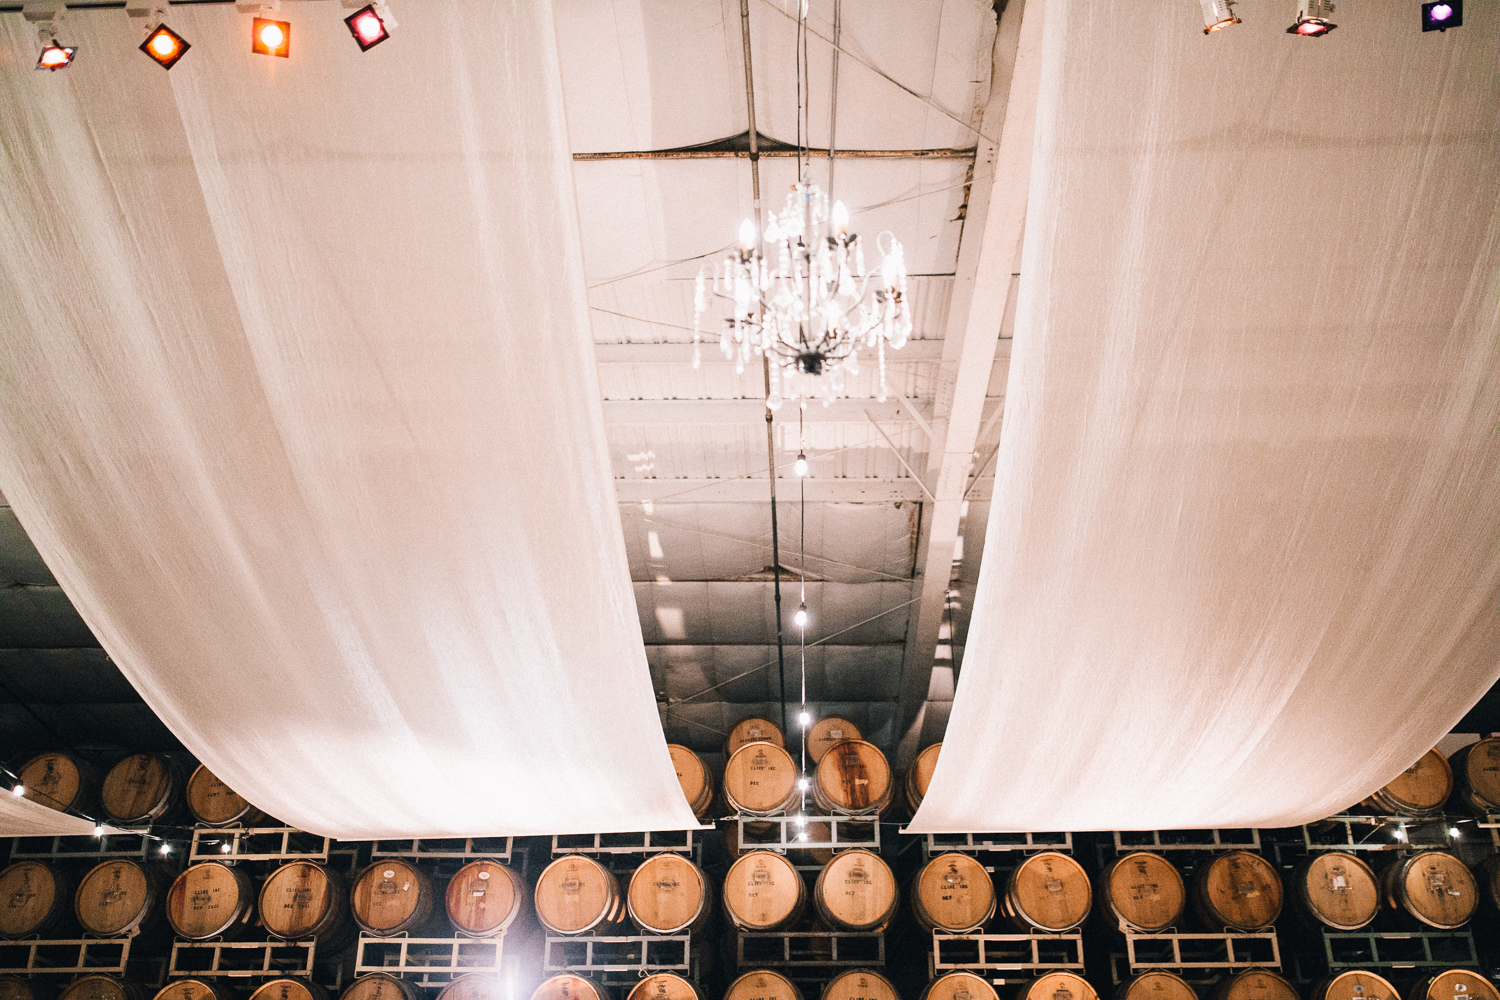 2018_08_ 112018.08.11 Cline Vinyard Wedding Blog Photos Edited For Web 0059.jpg